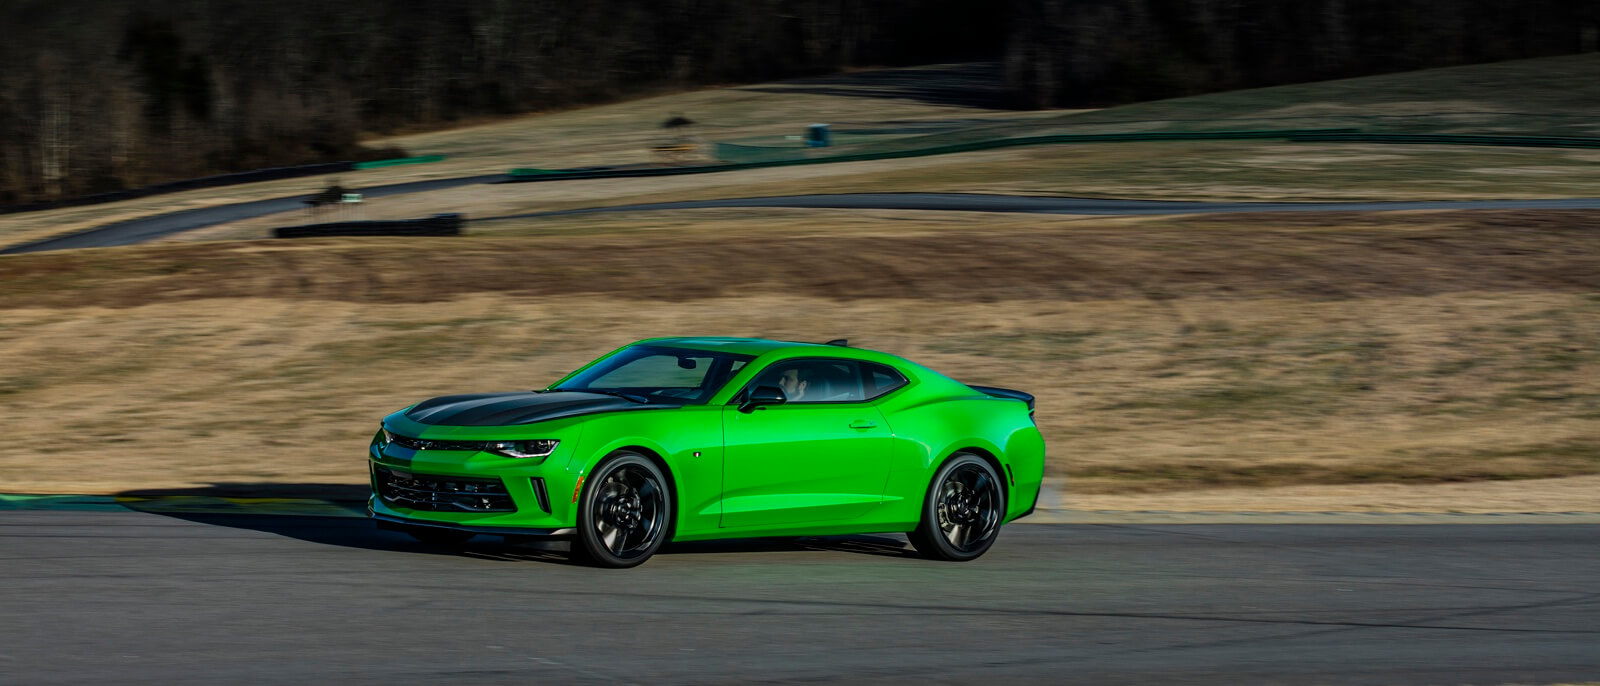 Chevy Camaro Lease >> 2017 Chevrolet Camaro ZL1: Supercharged Power